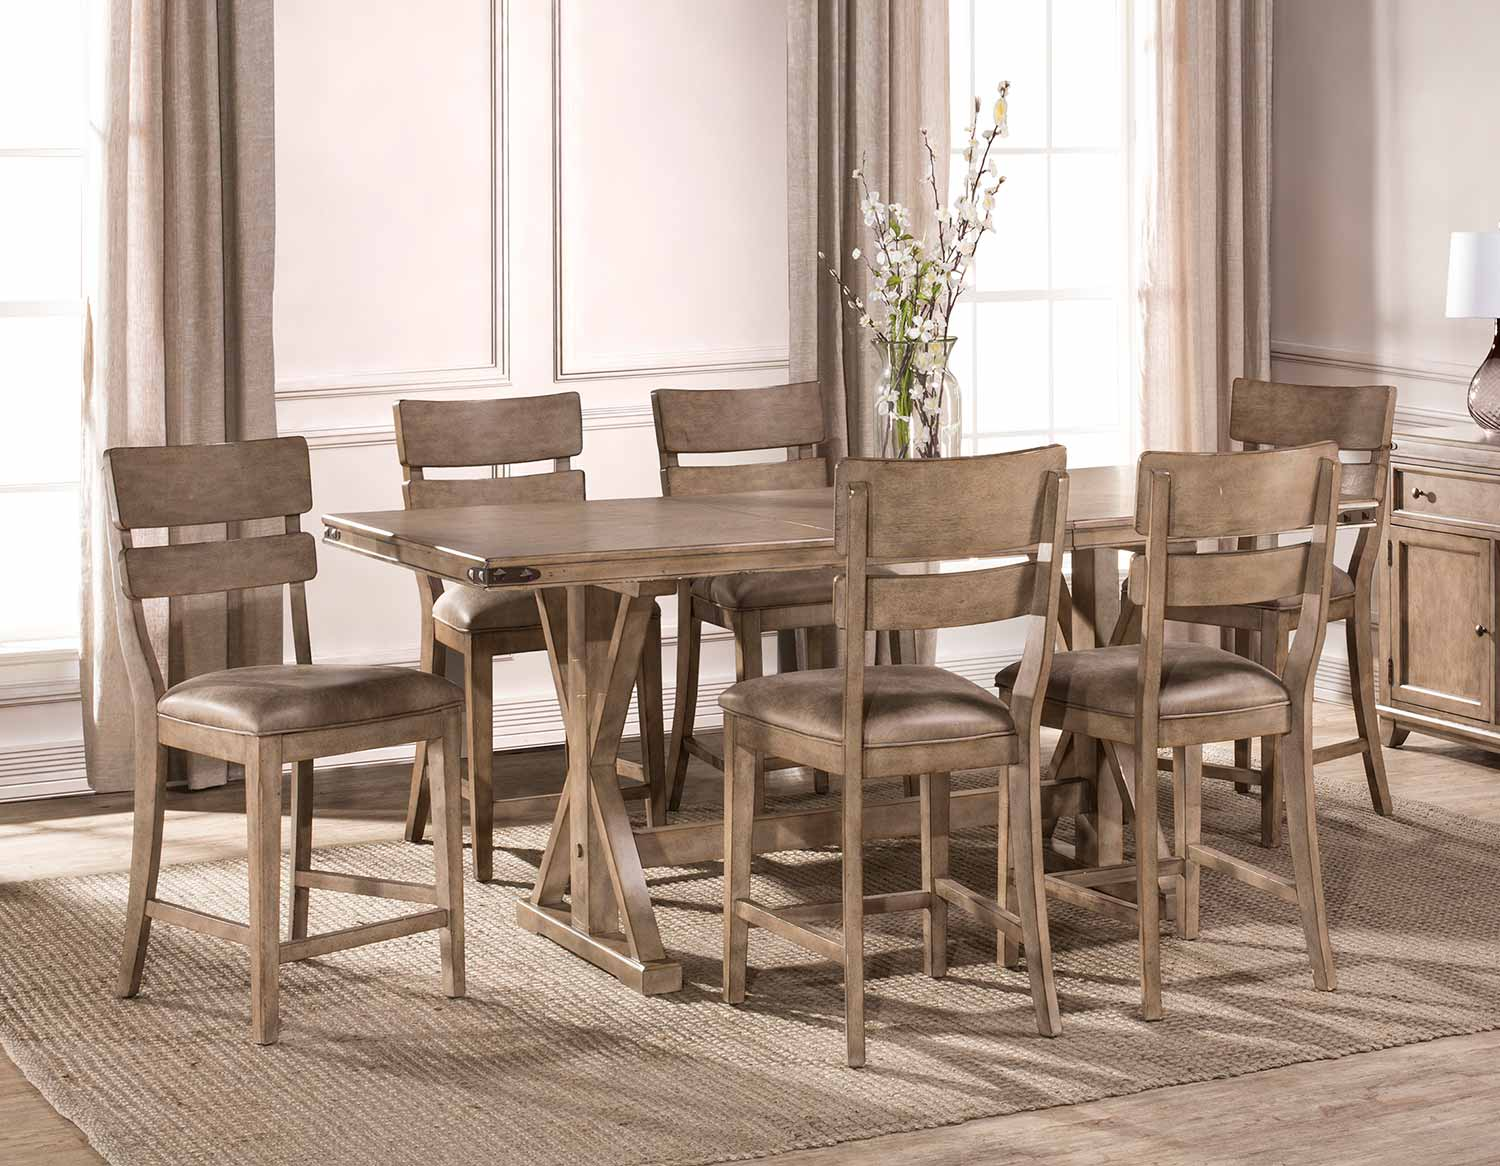 Hillsdale Leclair 7-Piece Counter Height Dining Set - Vintage Grey